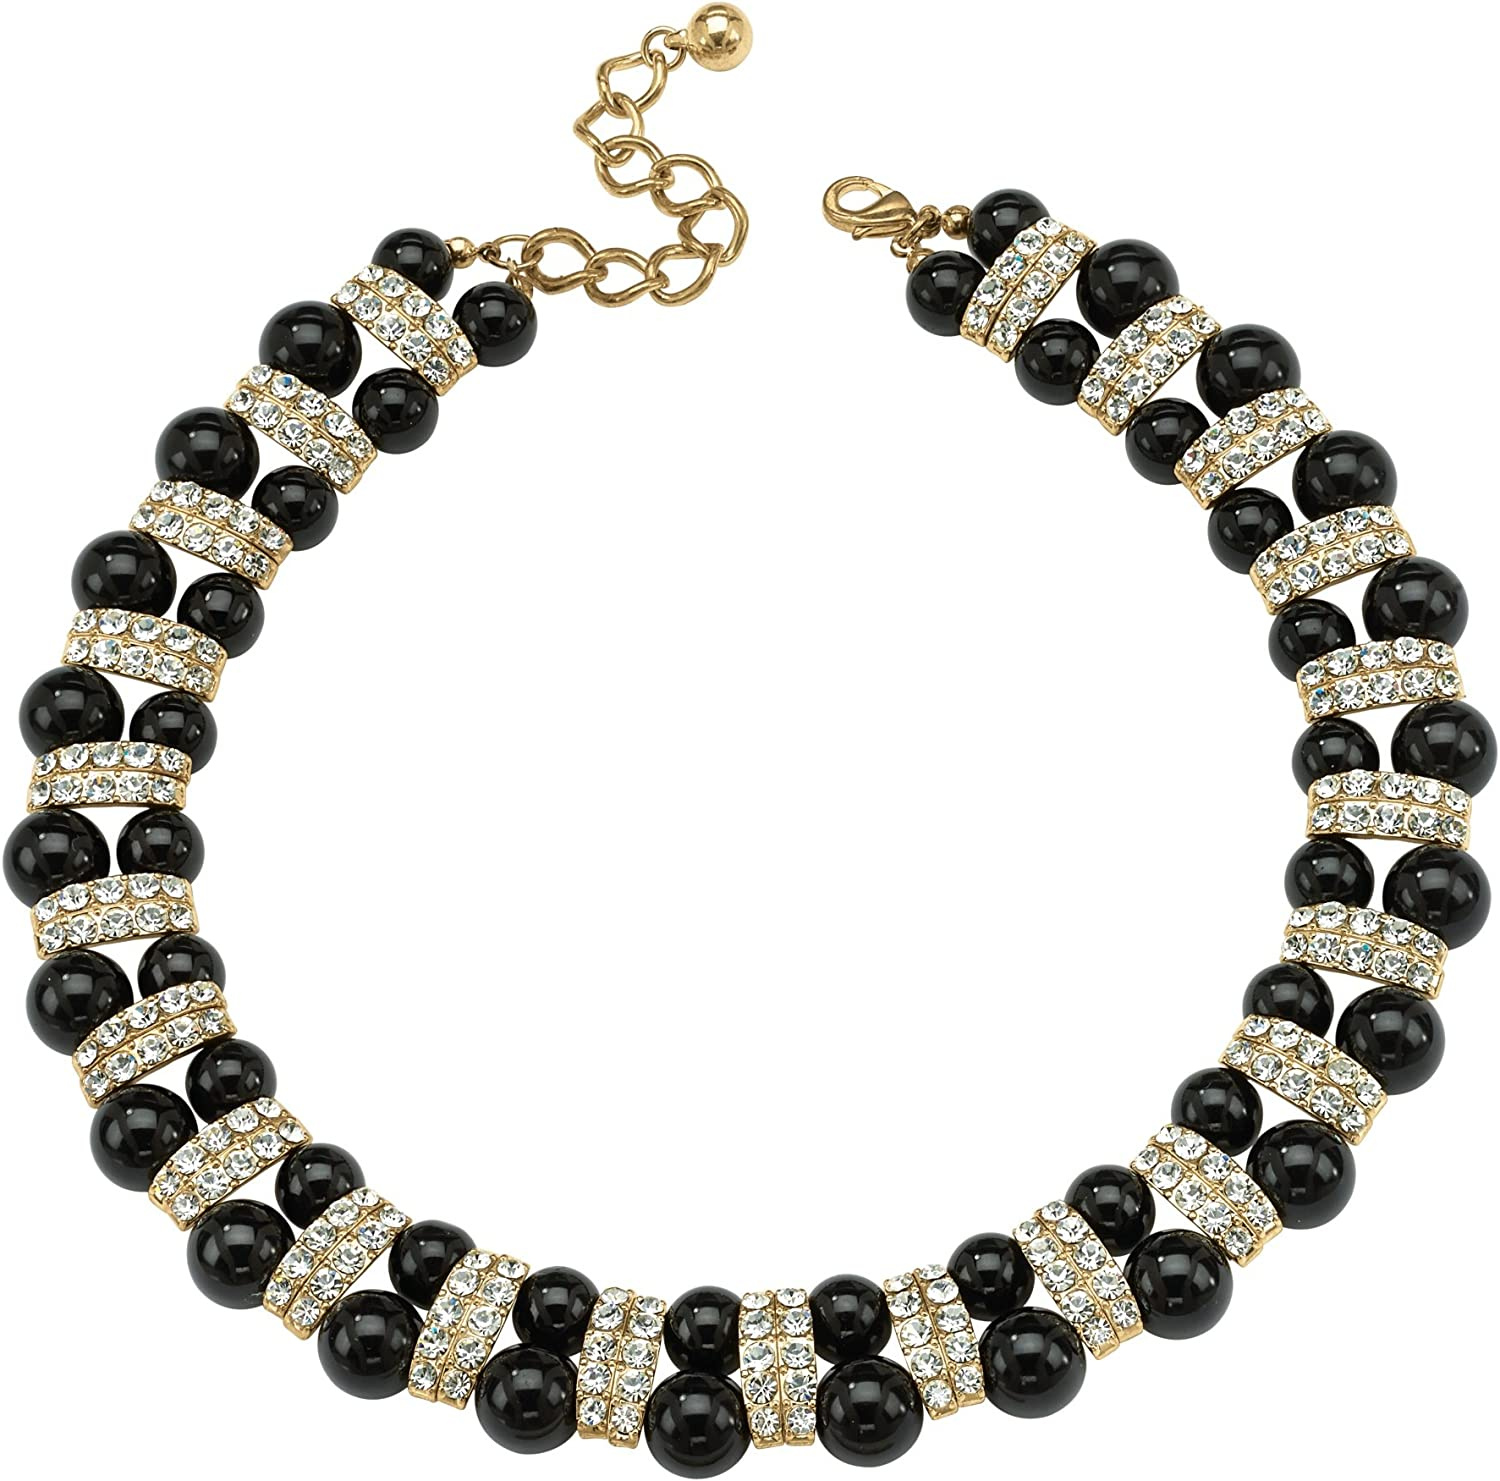 Palm Beach Jewelry Goldtone Round Crystal and Black Lucite Beaded Collar Necklace (22mm), Lobster Claw Clasp, 18 inch Adjustable